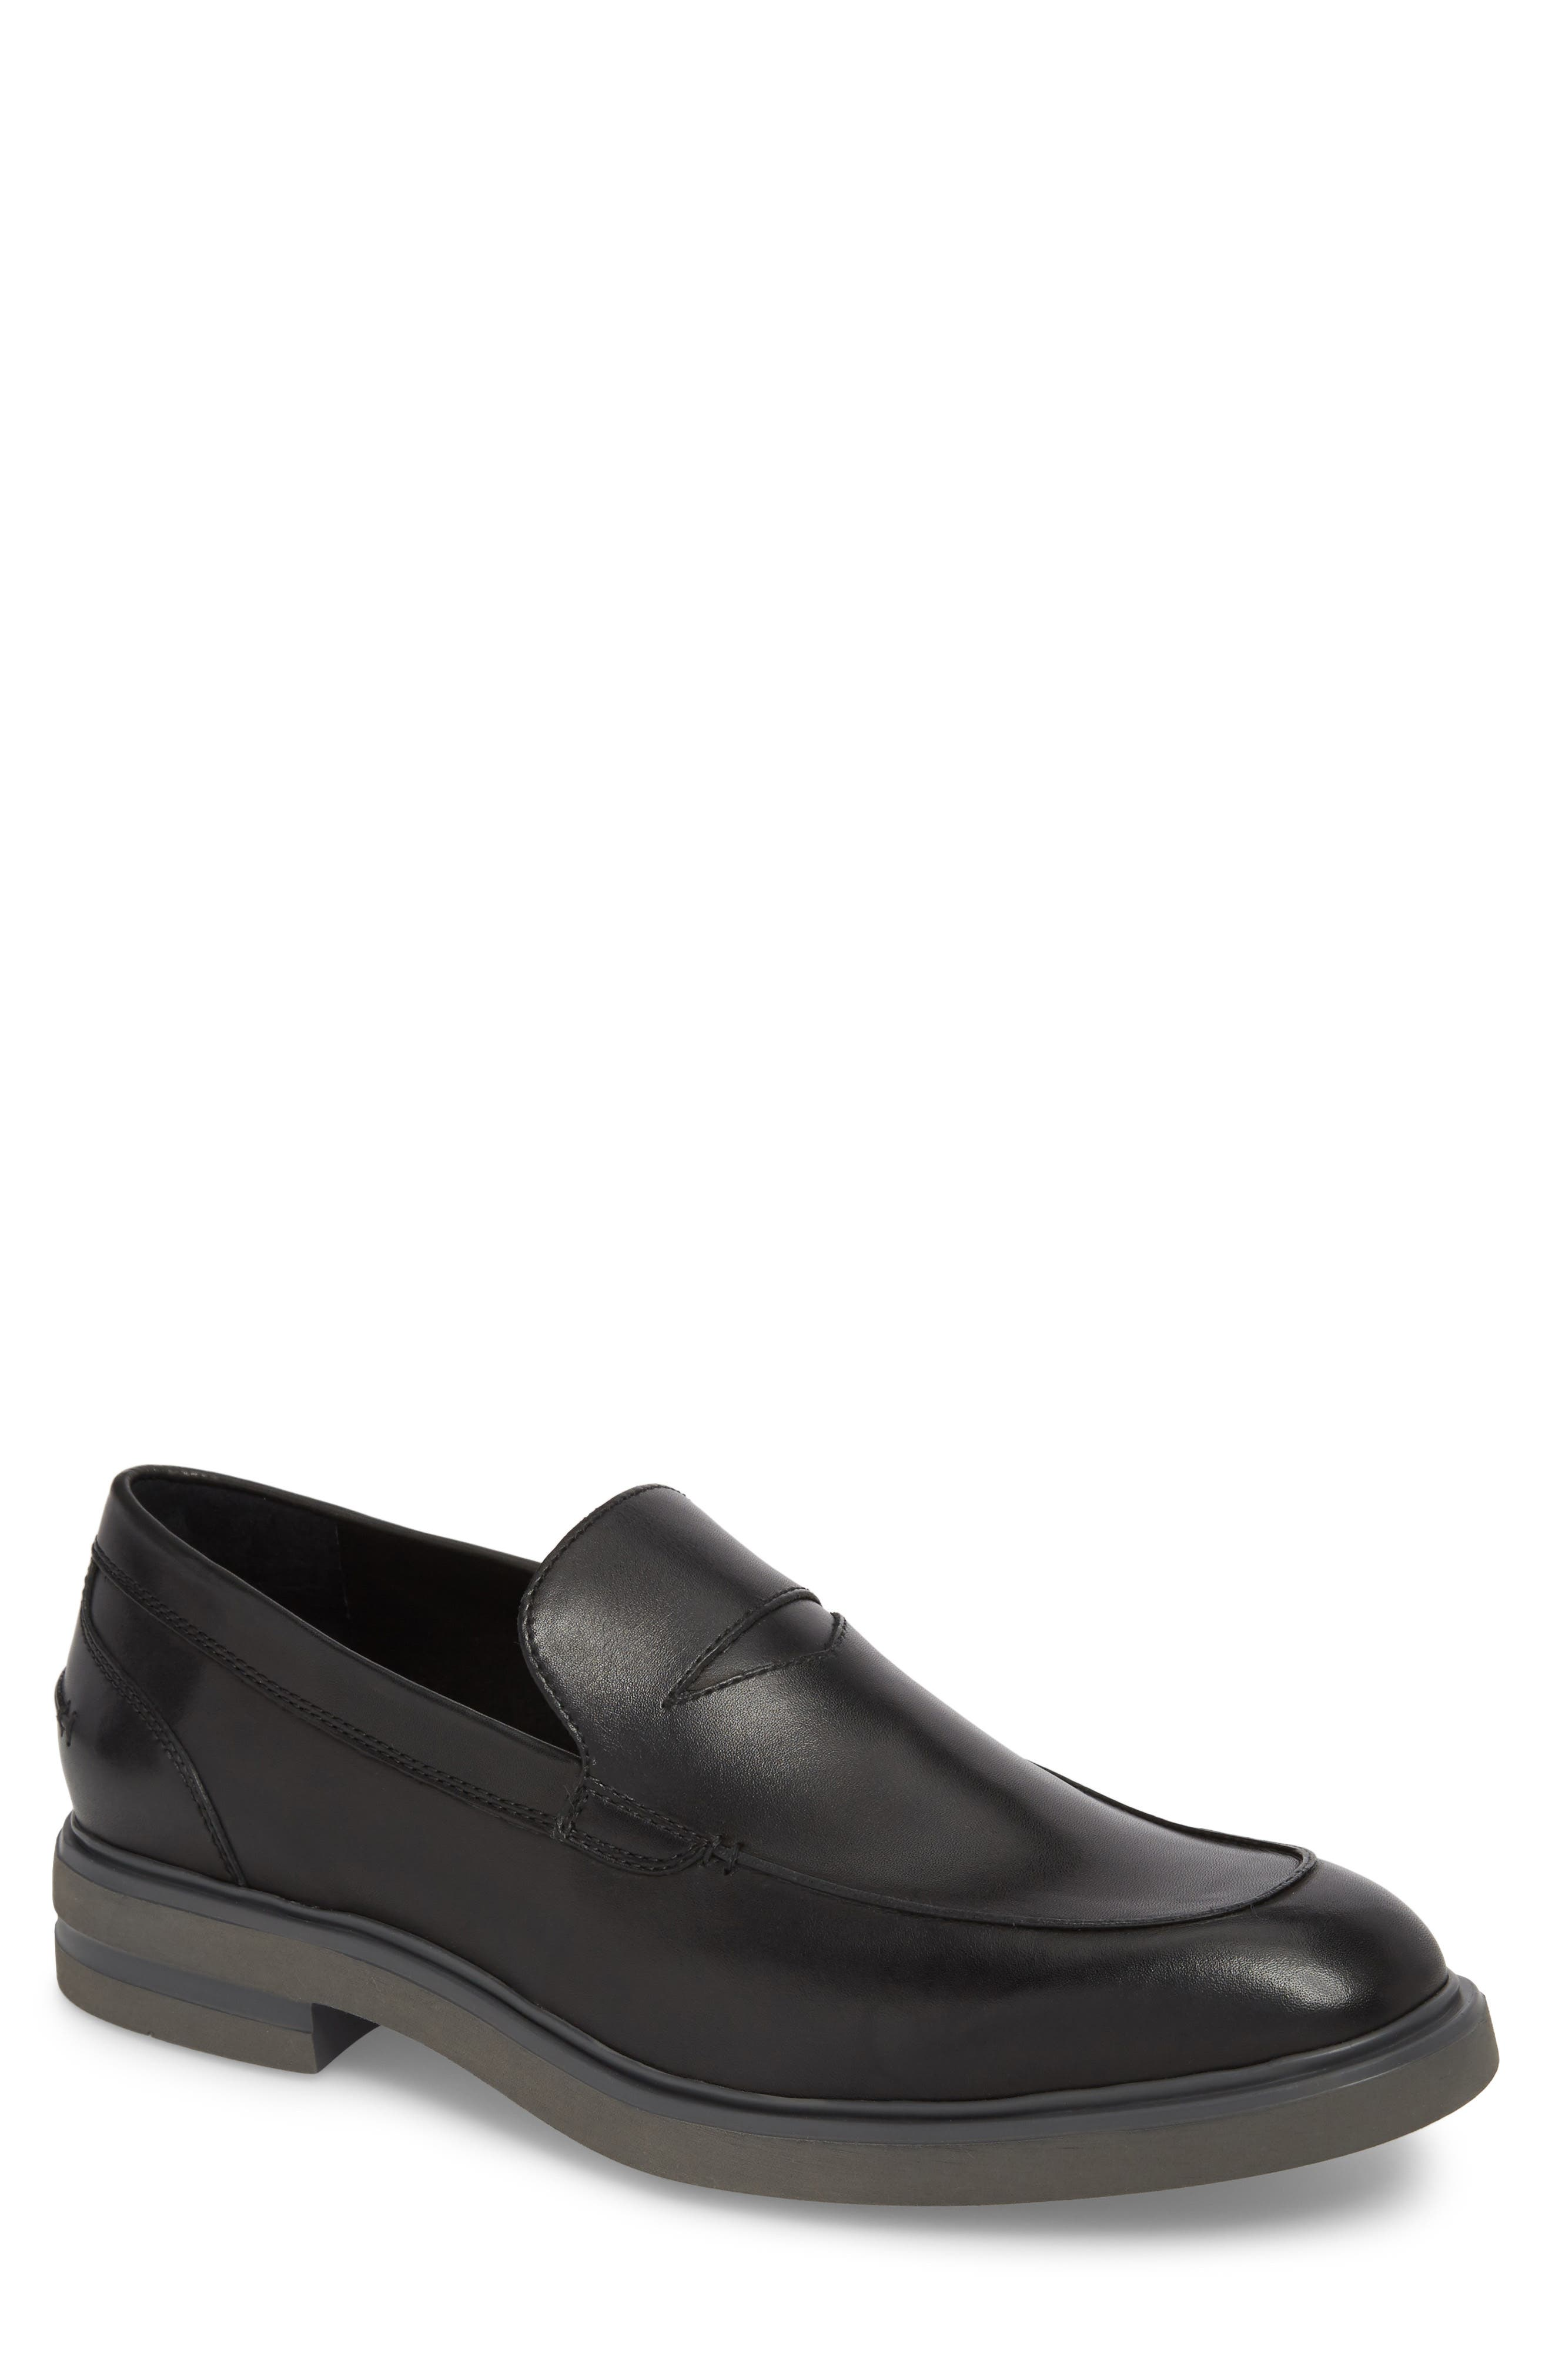 Edwyn Deconstructed Penny Loafer,                             Main thumbnail 1, color,                             Black Leather